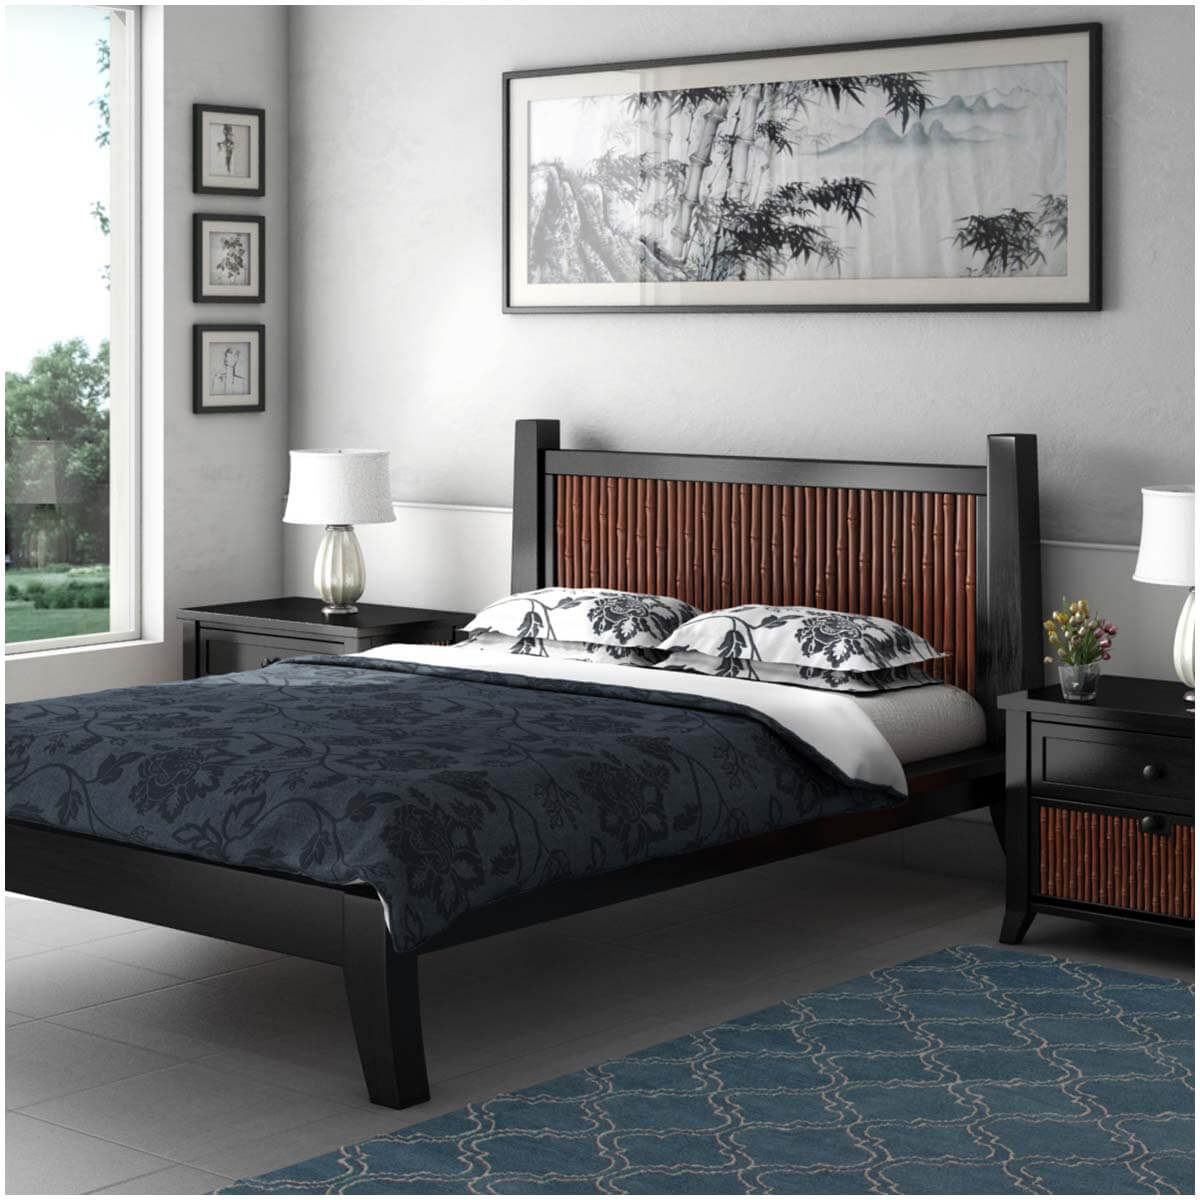 key west bamboo solid wood full size platform bed with headboard. Black Bedroom Furniture Sets. Home Design Ideas